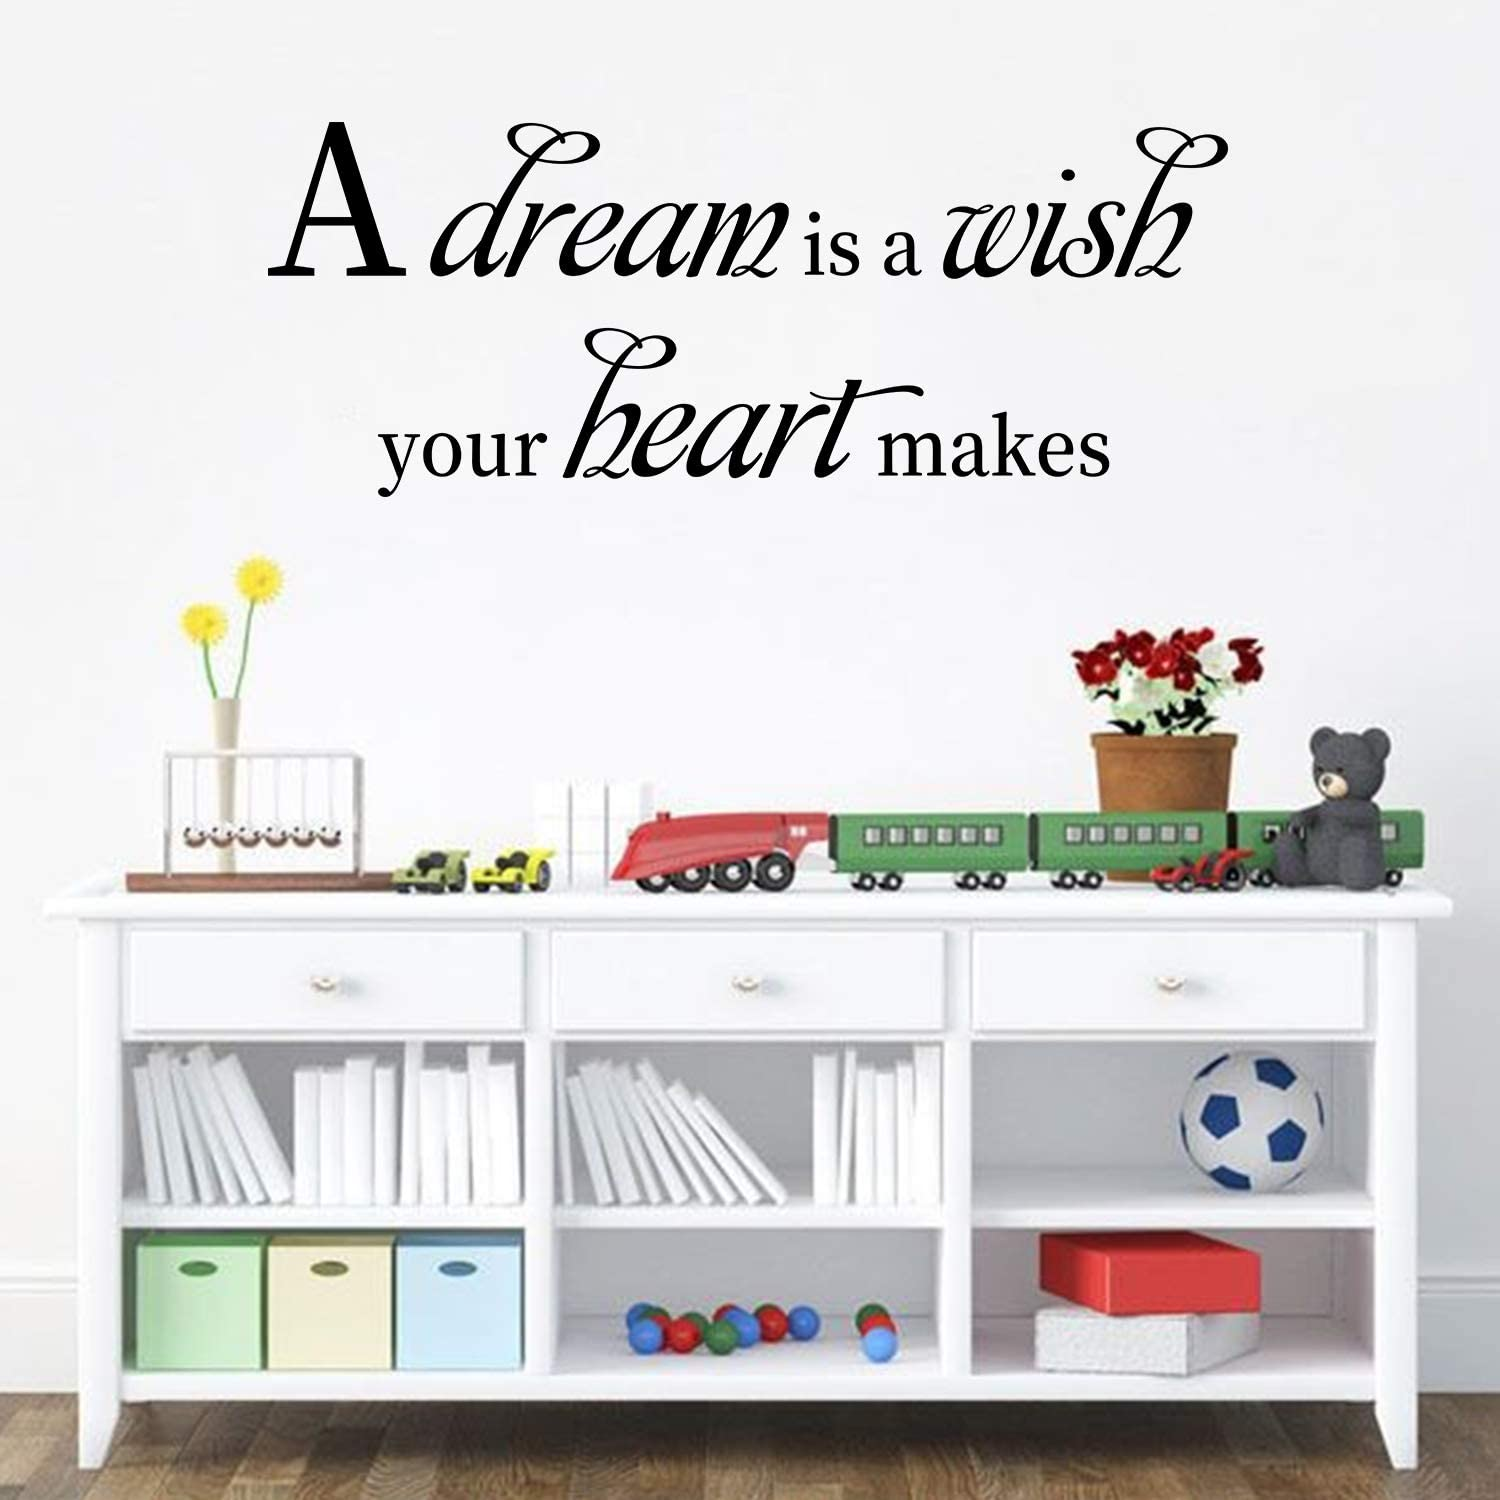 AnFigure Wall Decals Quotes, Inspirational Wall Decals, Disney Cinderella Movie Music Song Living Room Bedroom Bed Family Couple Home Art Decor Vinyl Stickers A Dream is a Wish Your Heart Makes 23